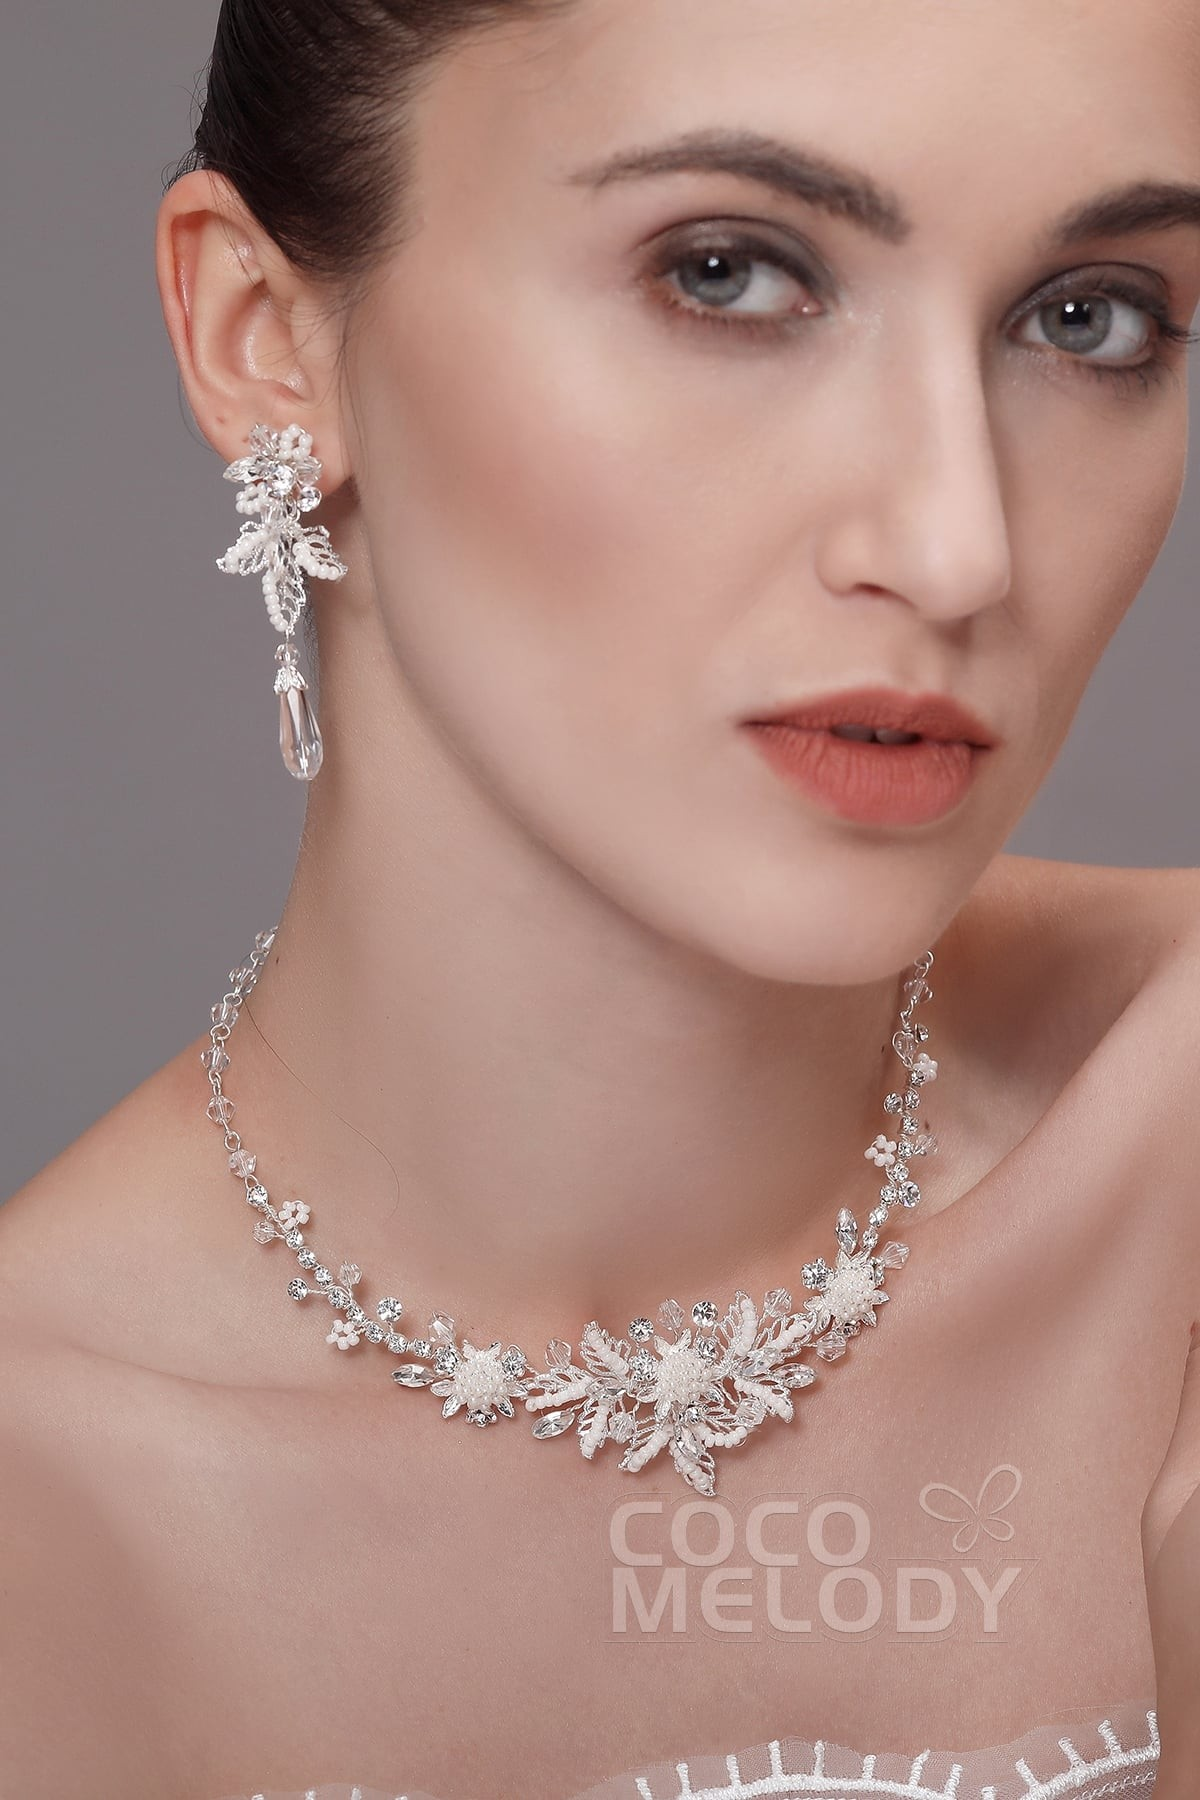 Cocomelody: Zircon Wedding Necklace and Earrings Jewelry Imitation ...